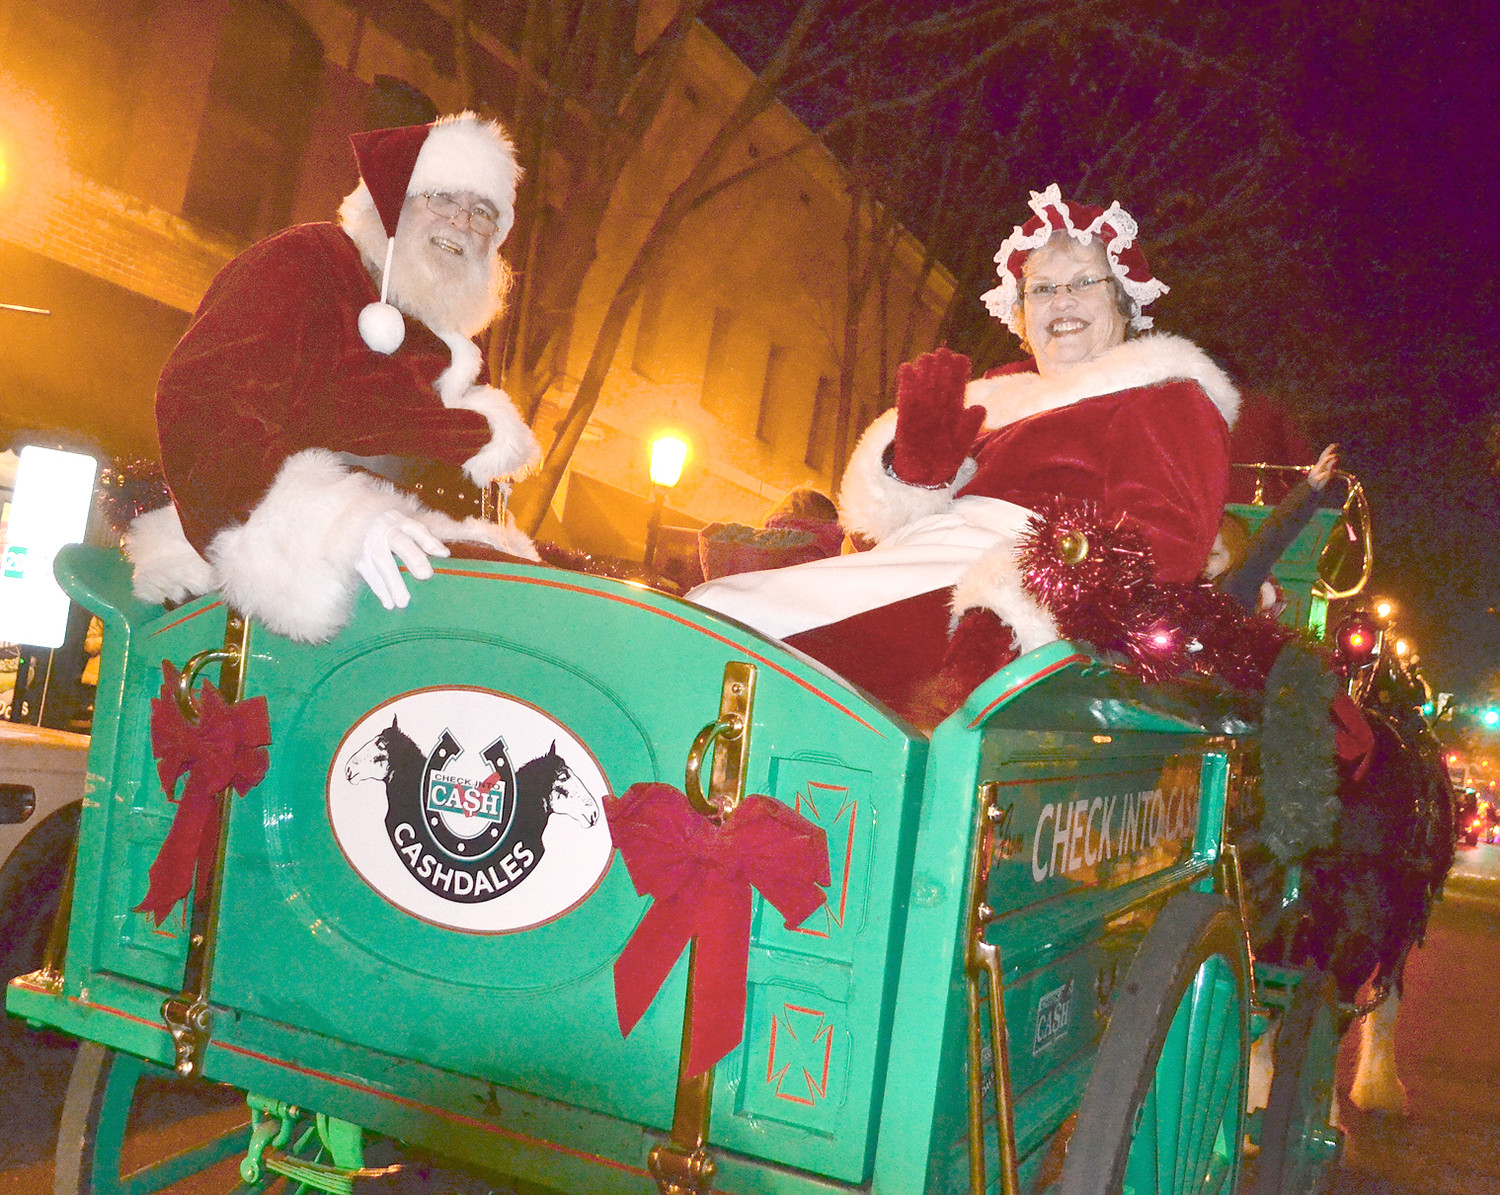 SANTA CLAUS AND MRS. CLAUS  rode with the Cashdales at Saturday's downtown Christmas parade.